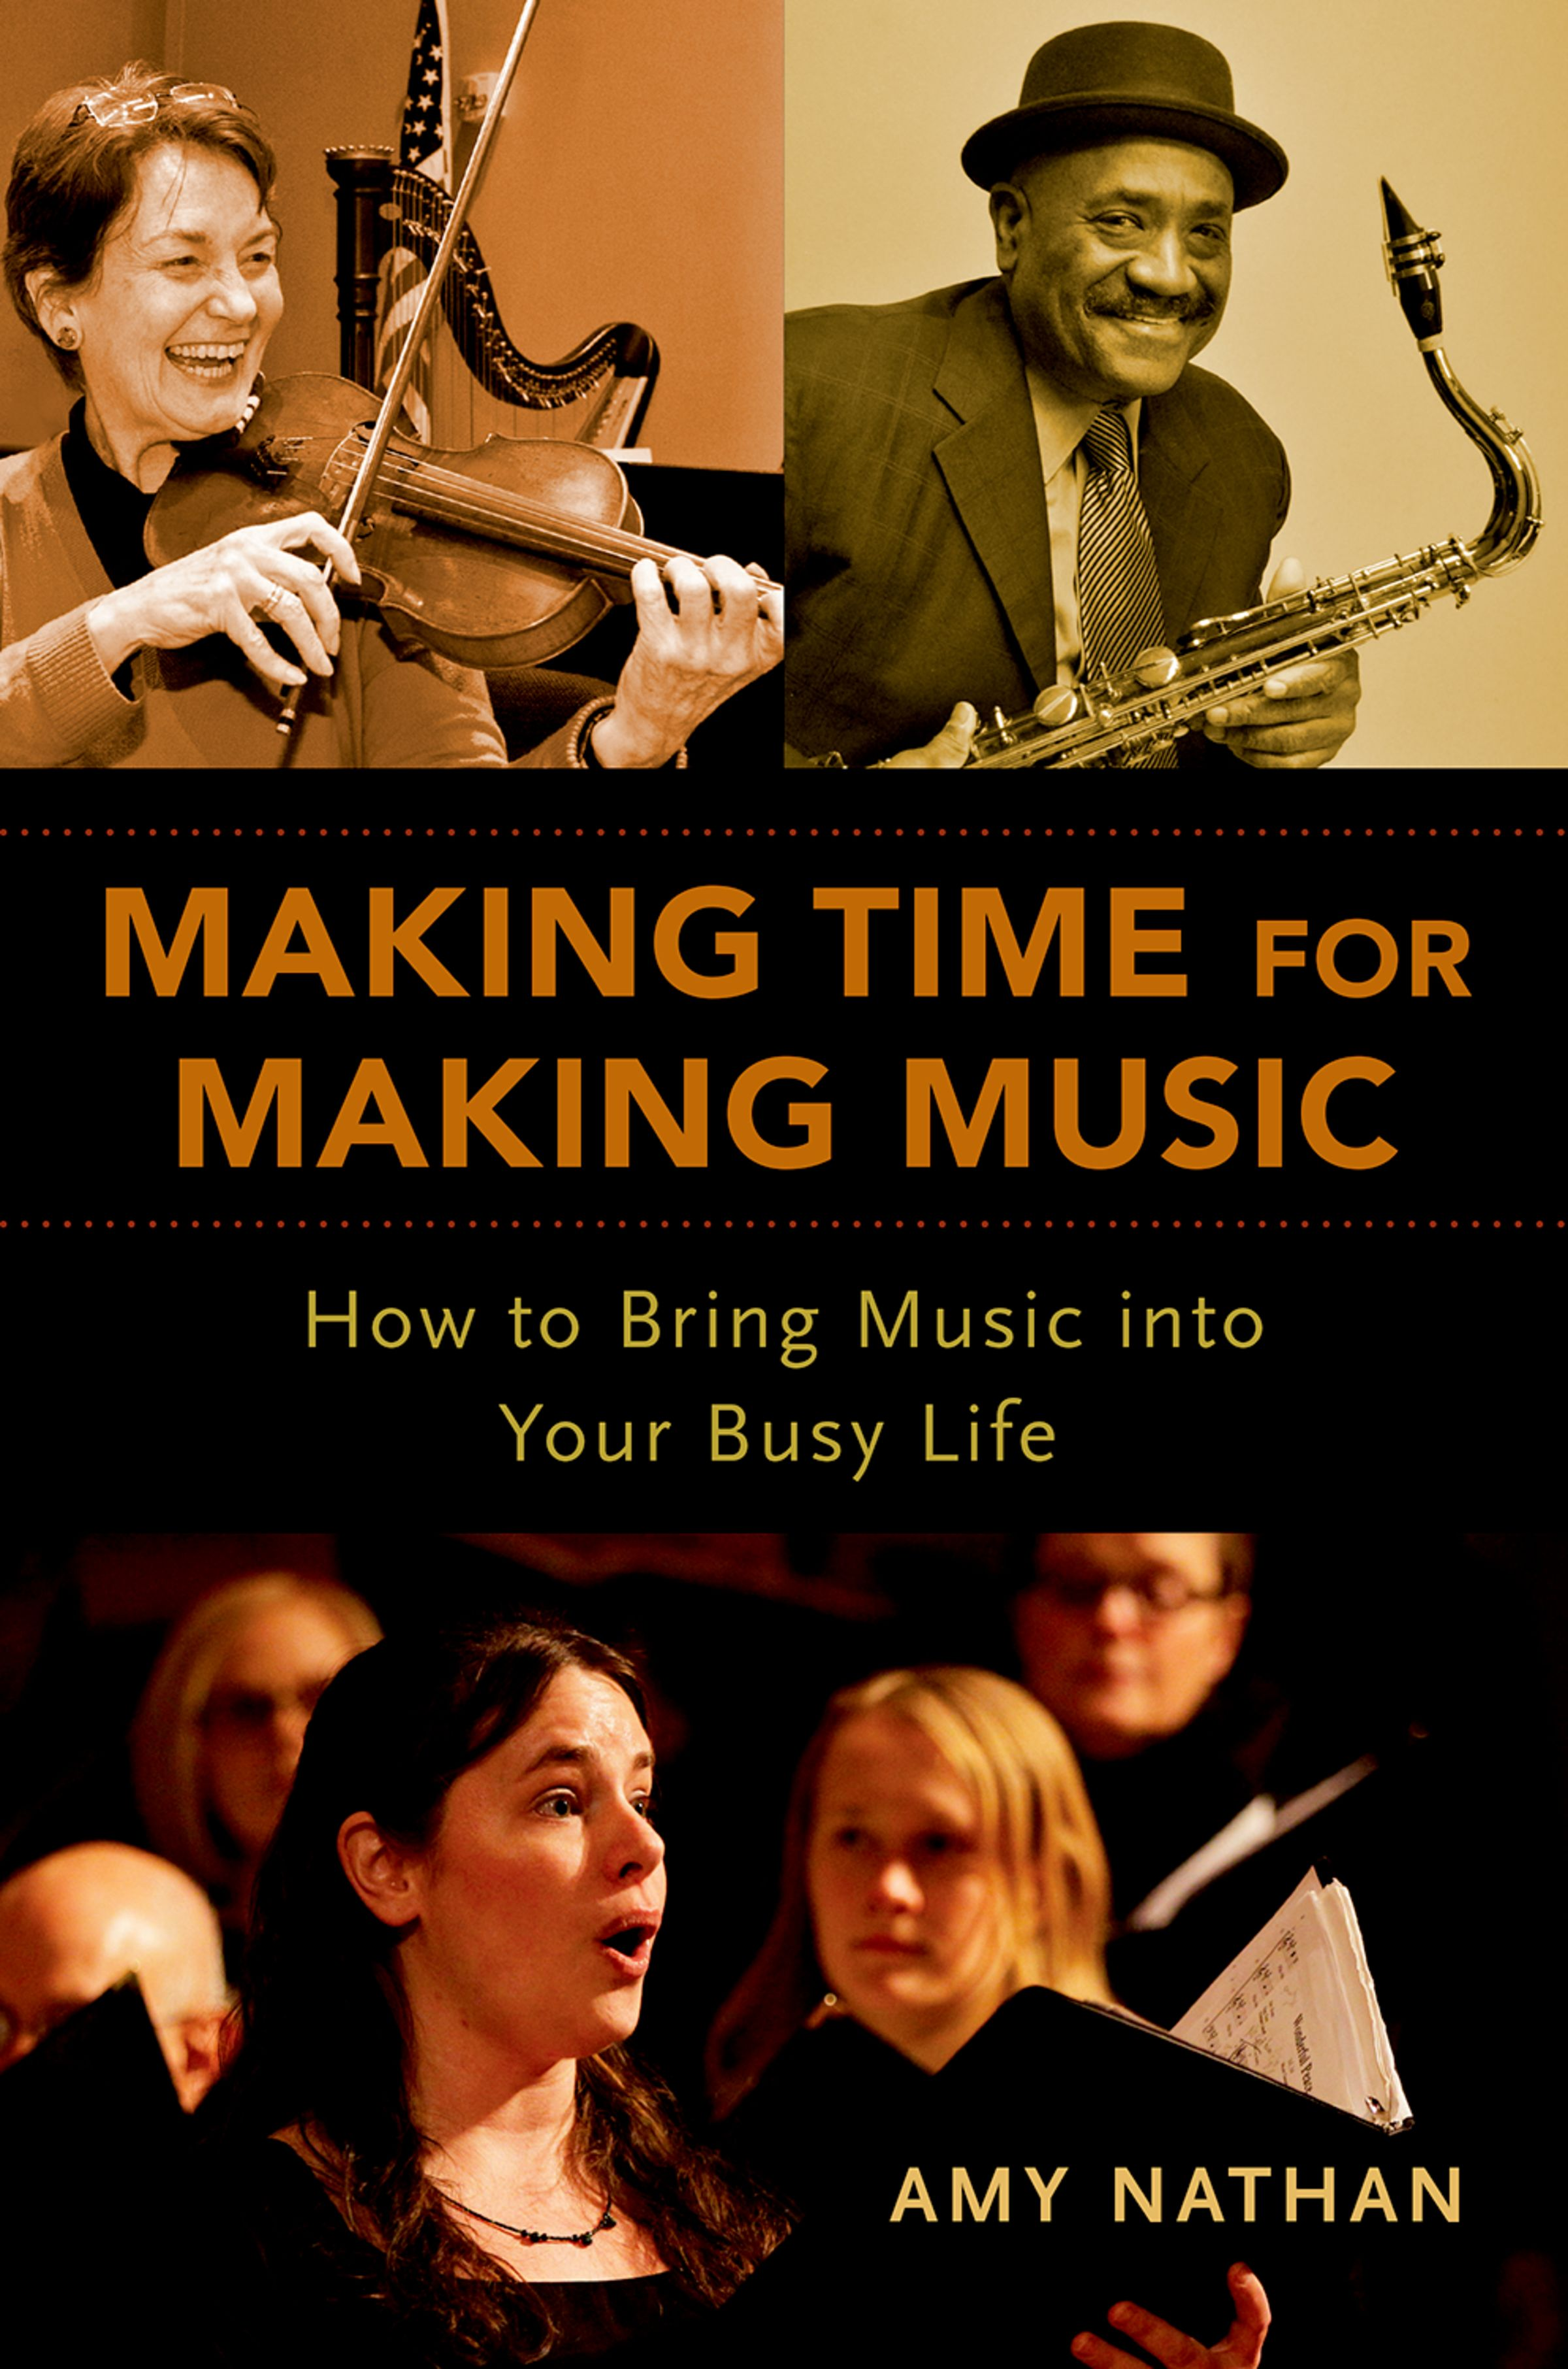 Making time for music